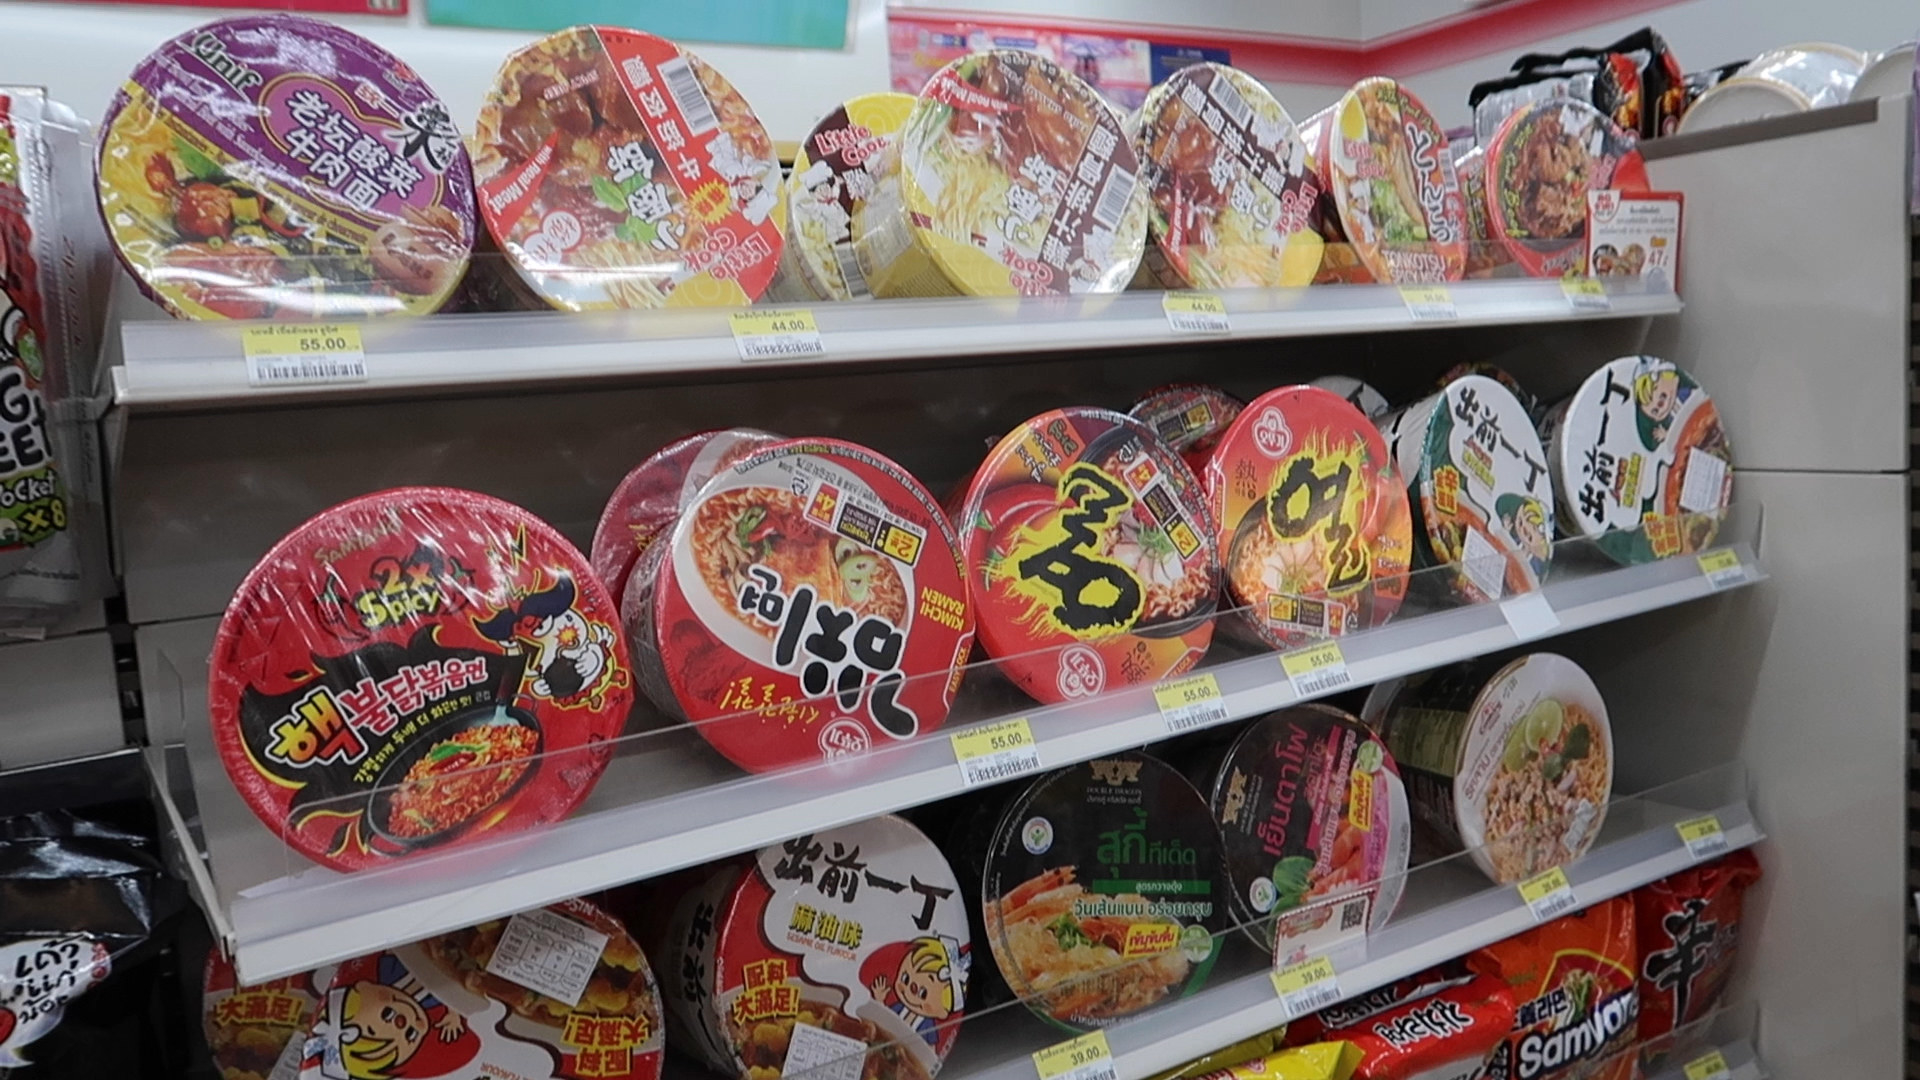 Three shelves full of instant noodle bowls